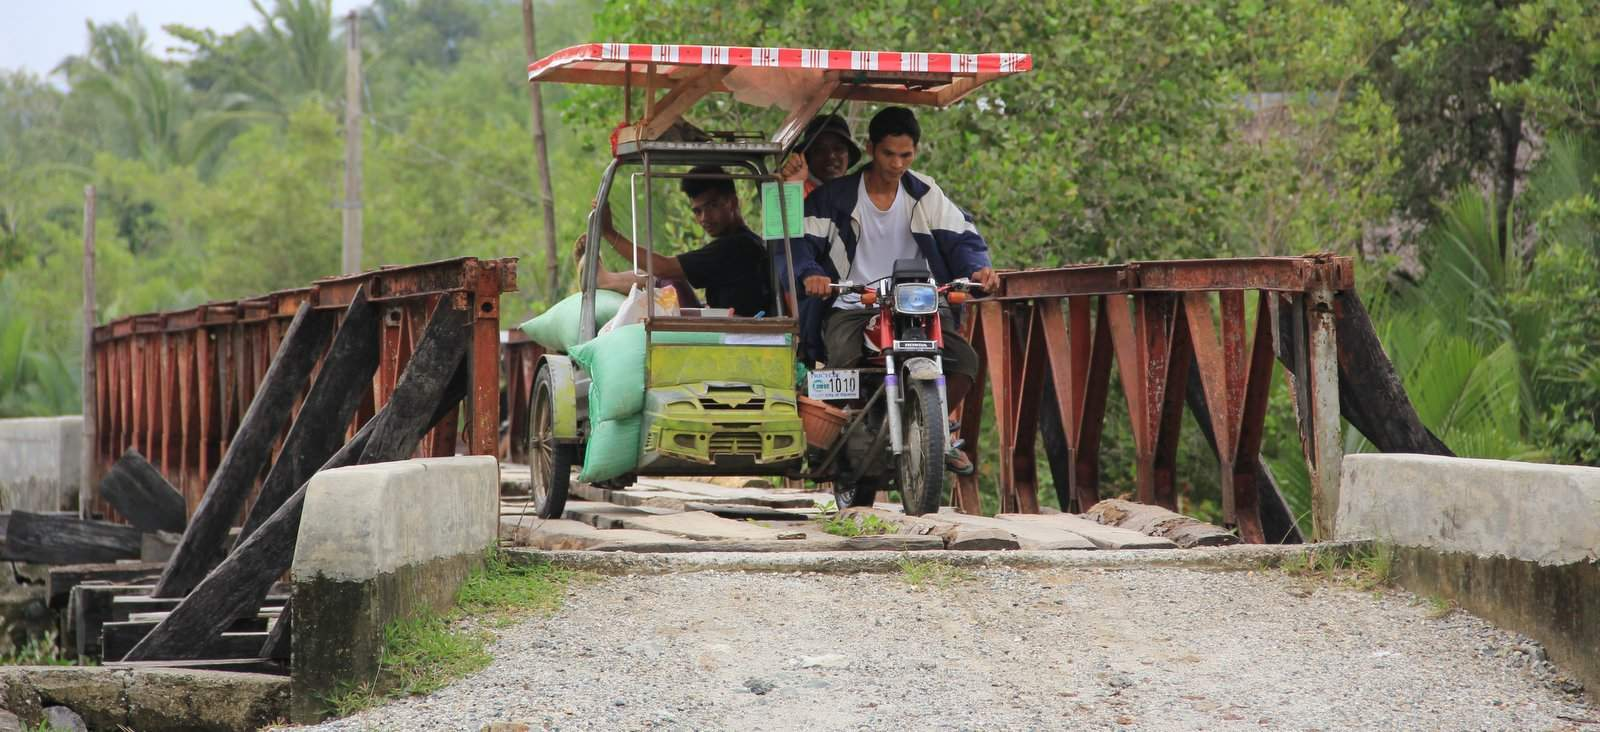 transport in asia